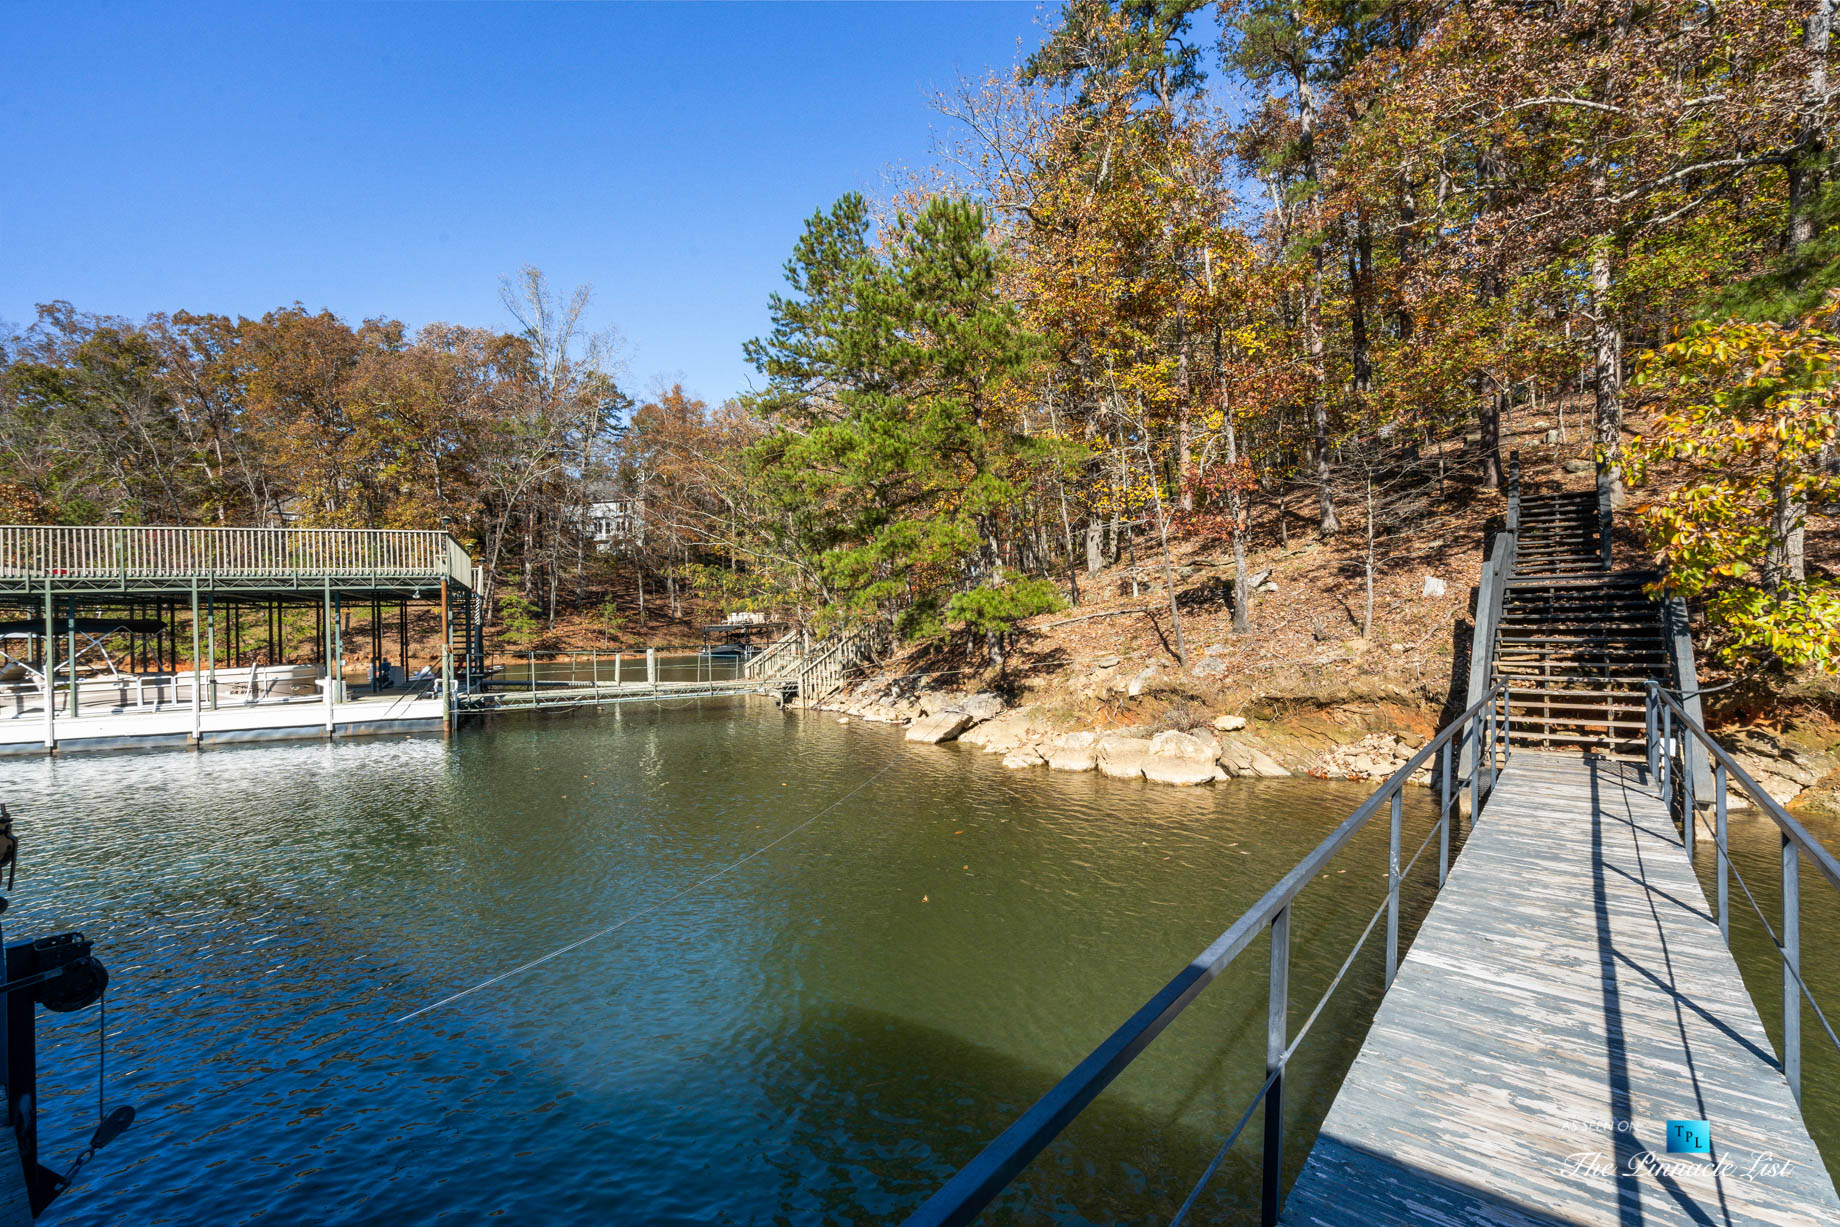 7860 Chestnut Hill Rd, Cumming, GA, USA – Walkway to Private Dock with Sundeck – Luxury Real Estate – Lake Lanier Mid-Century Modern Stone Home